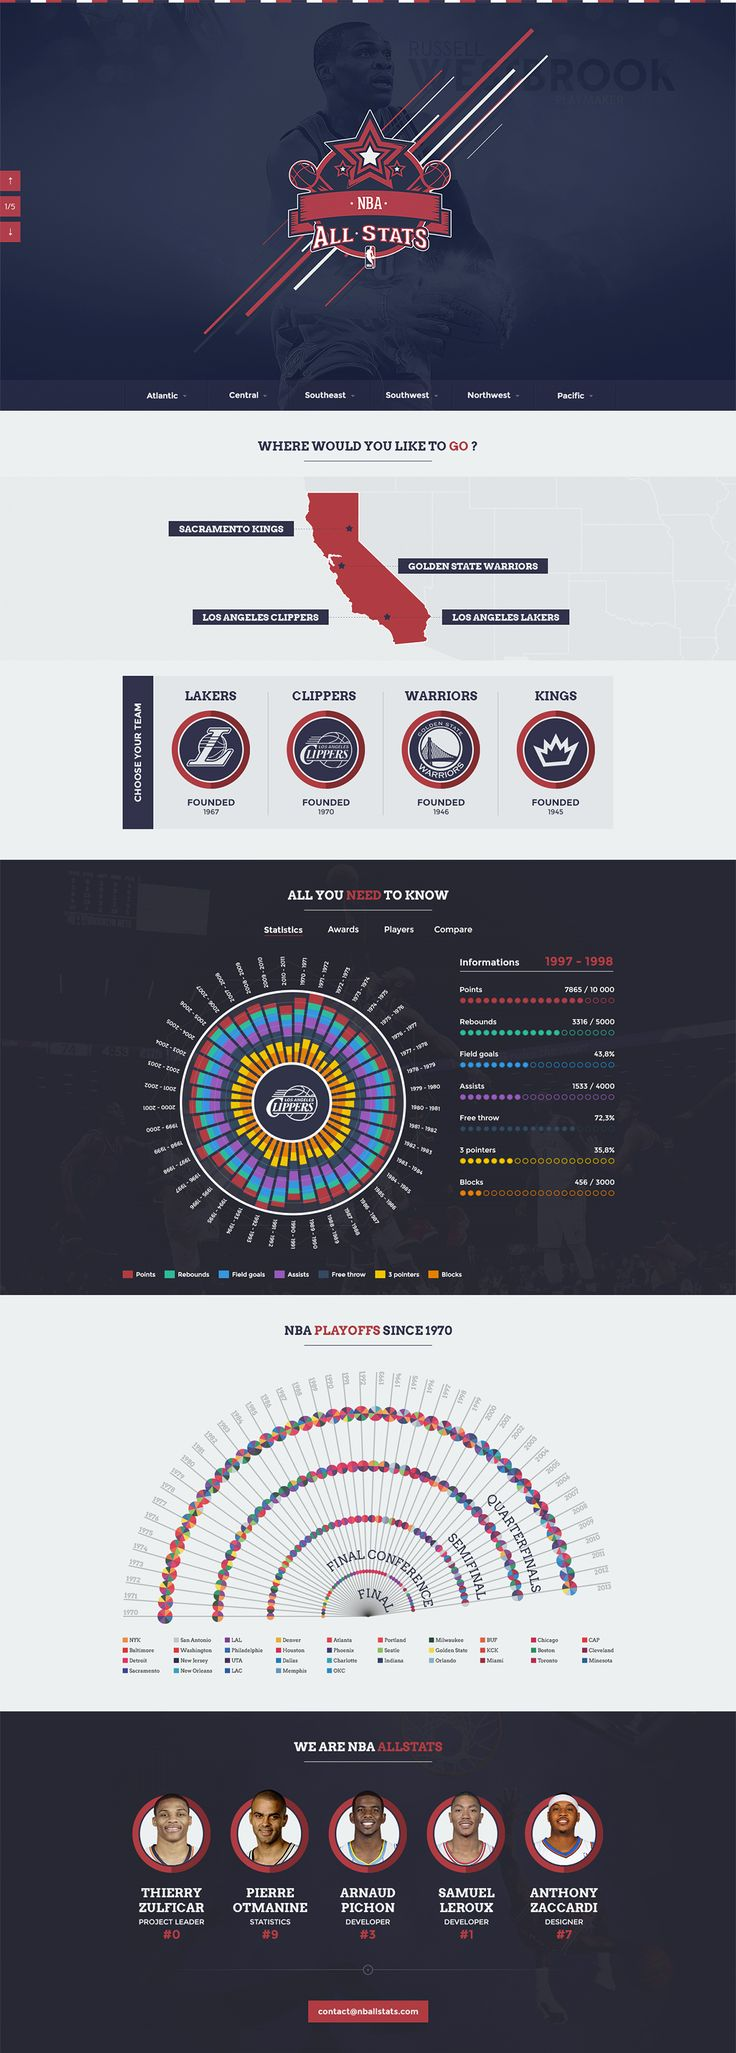 Our newest 'Most Loved' listing is this gorgeous one pager dedicated to providing stats for the NBA since 1970. The detail in these infographics is as good as it gets, not to mention the beautiful CSS transitions to switch between them. A seriously amount of love has gone into this site and love is what it deserves.